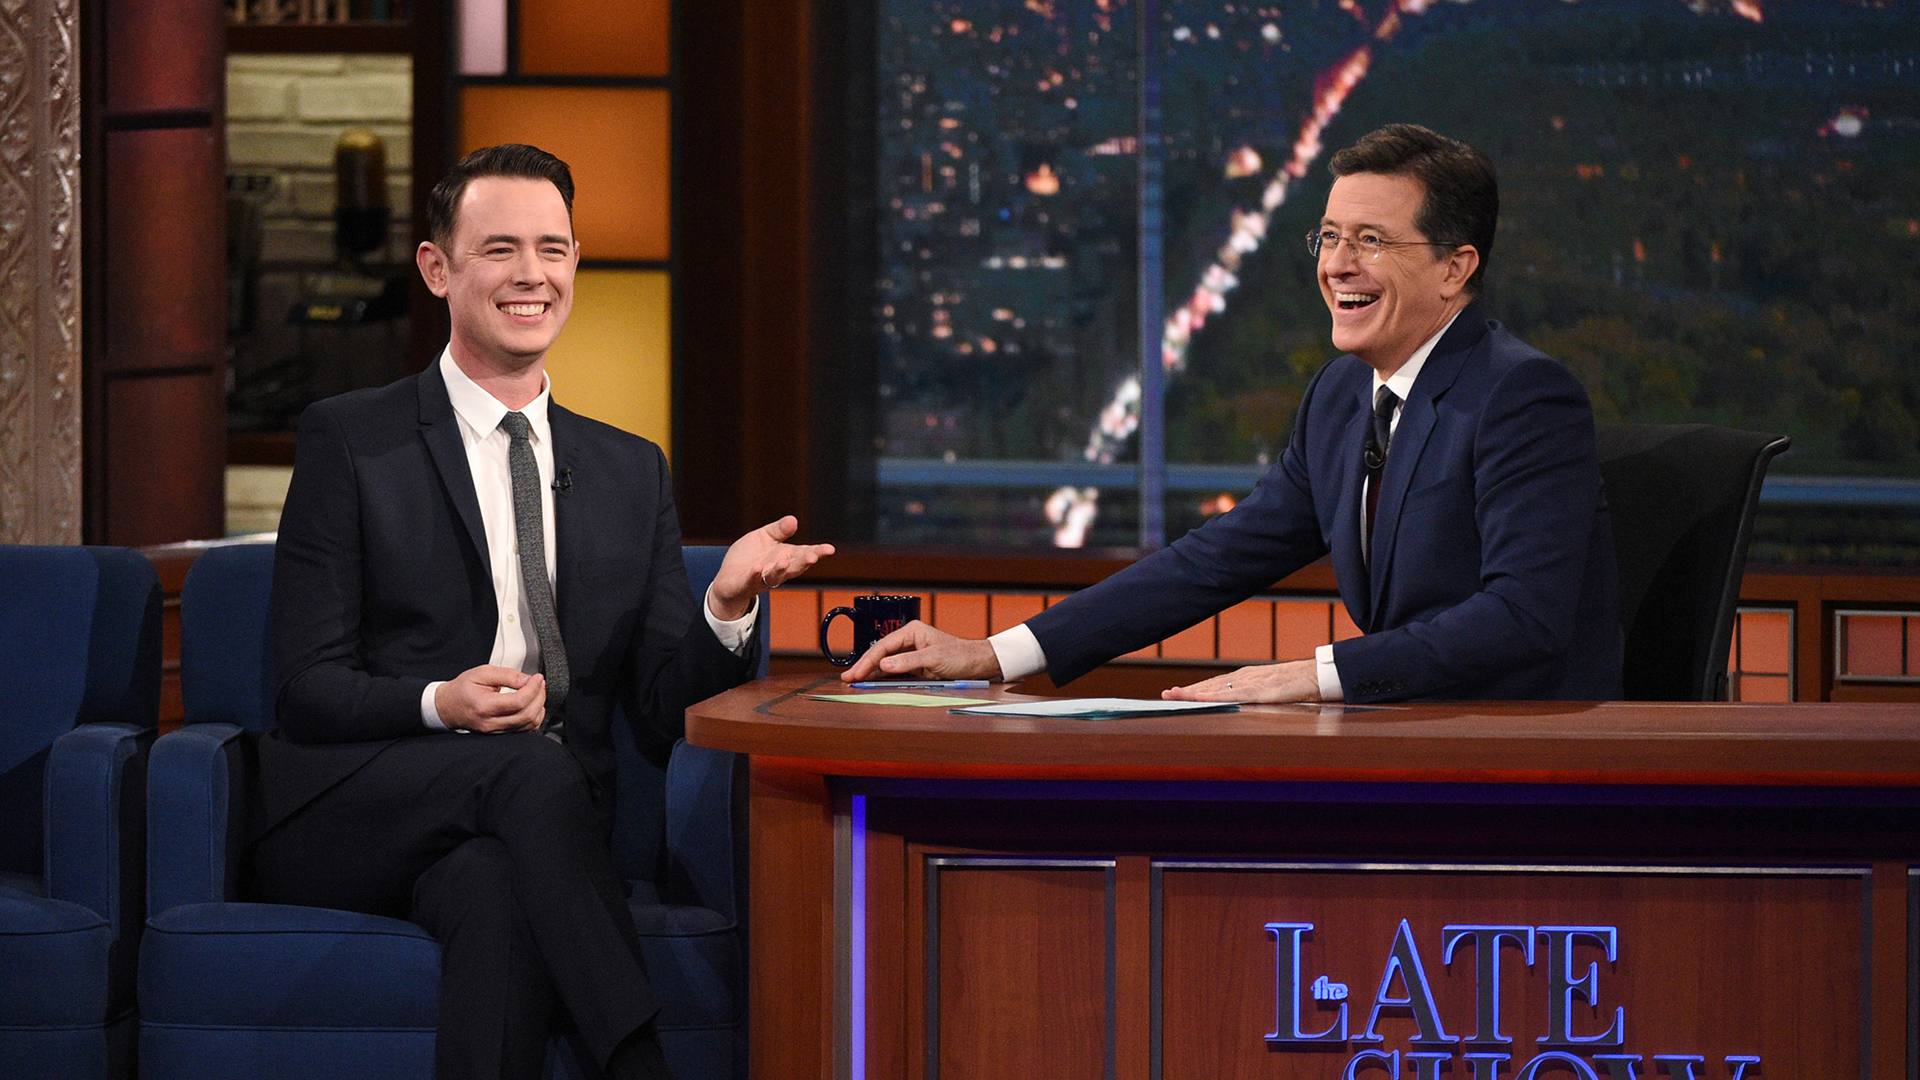 Colin Hanks and Stephen Colbert